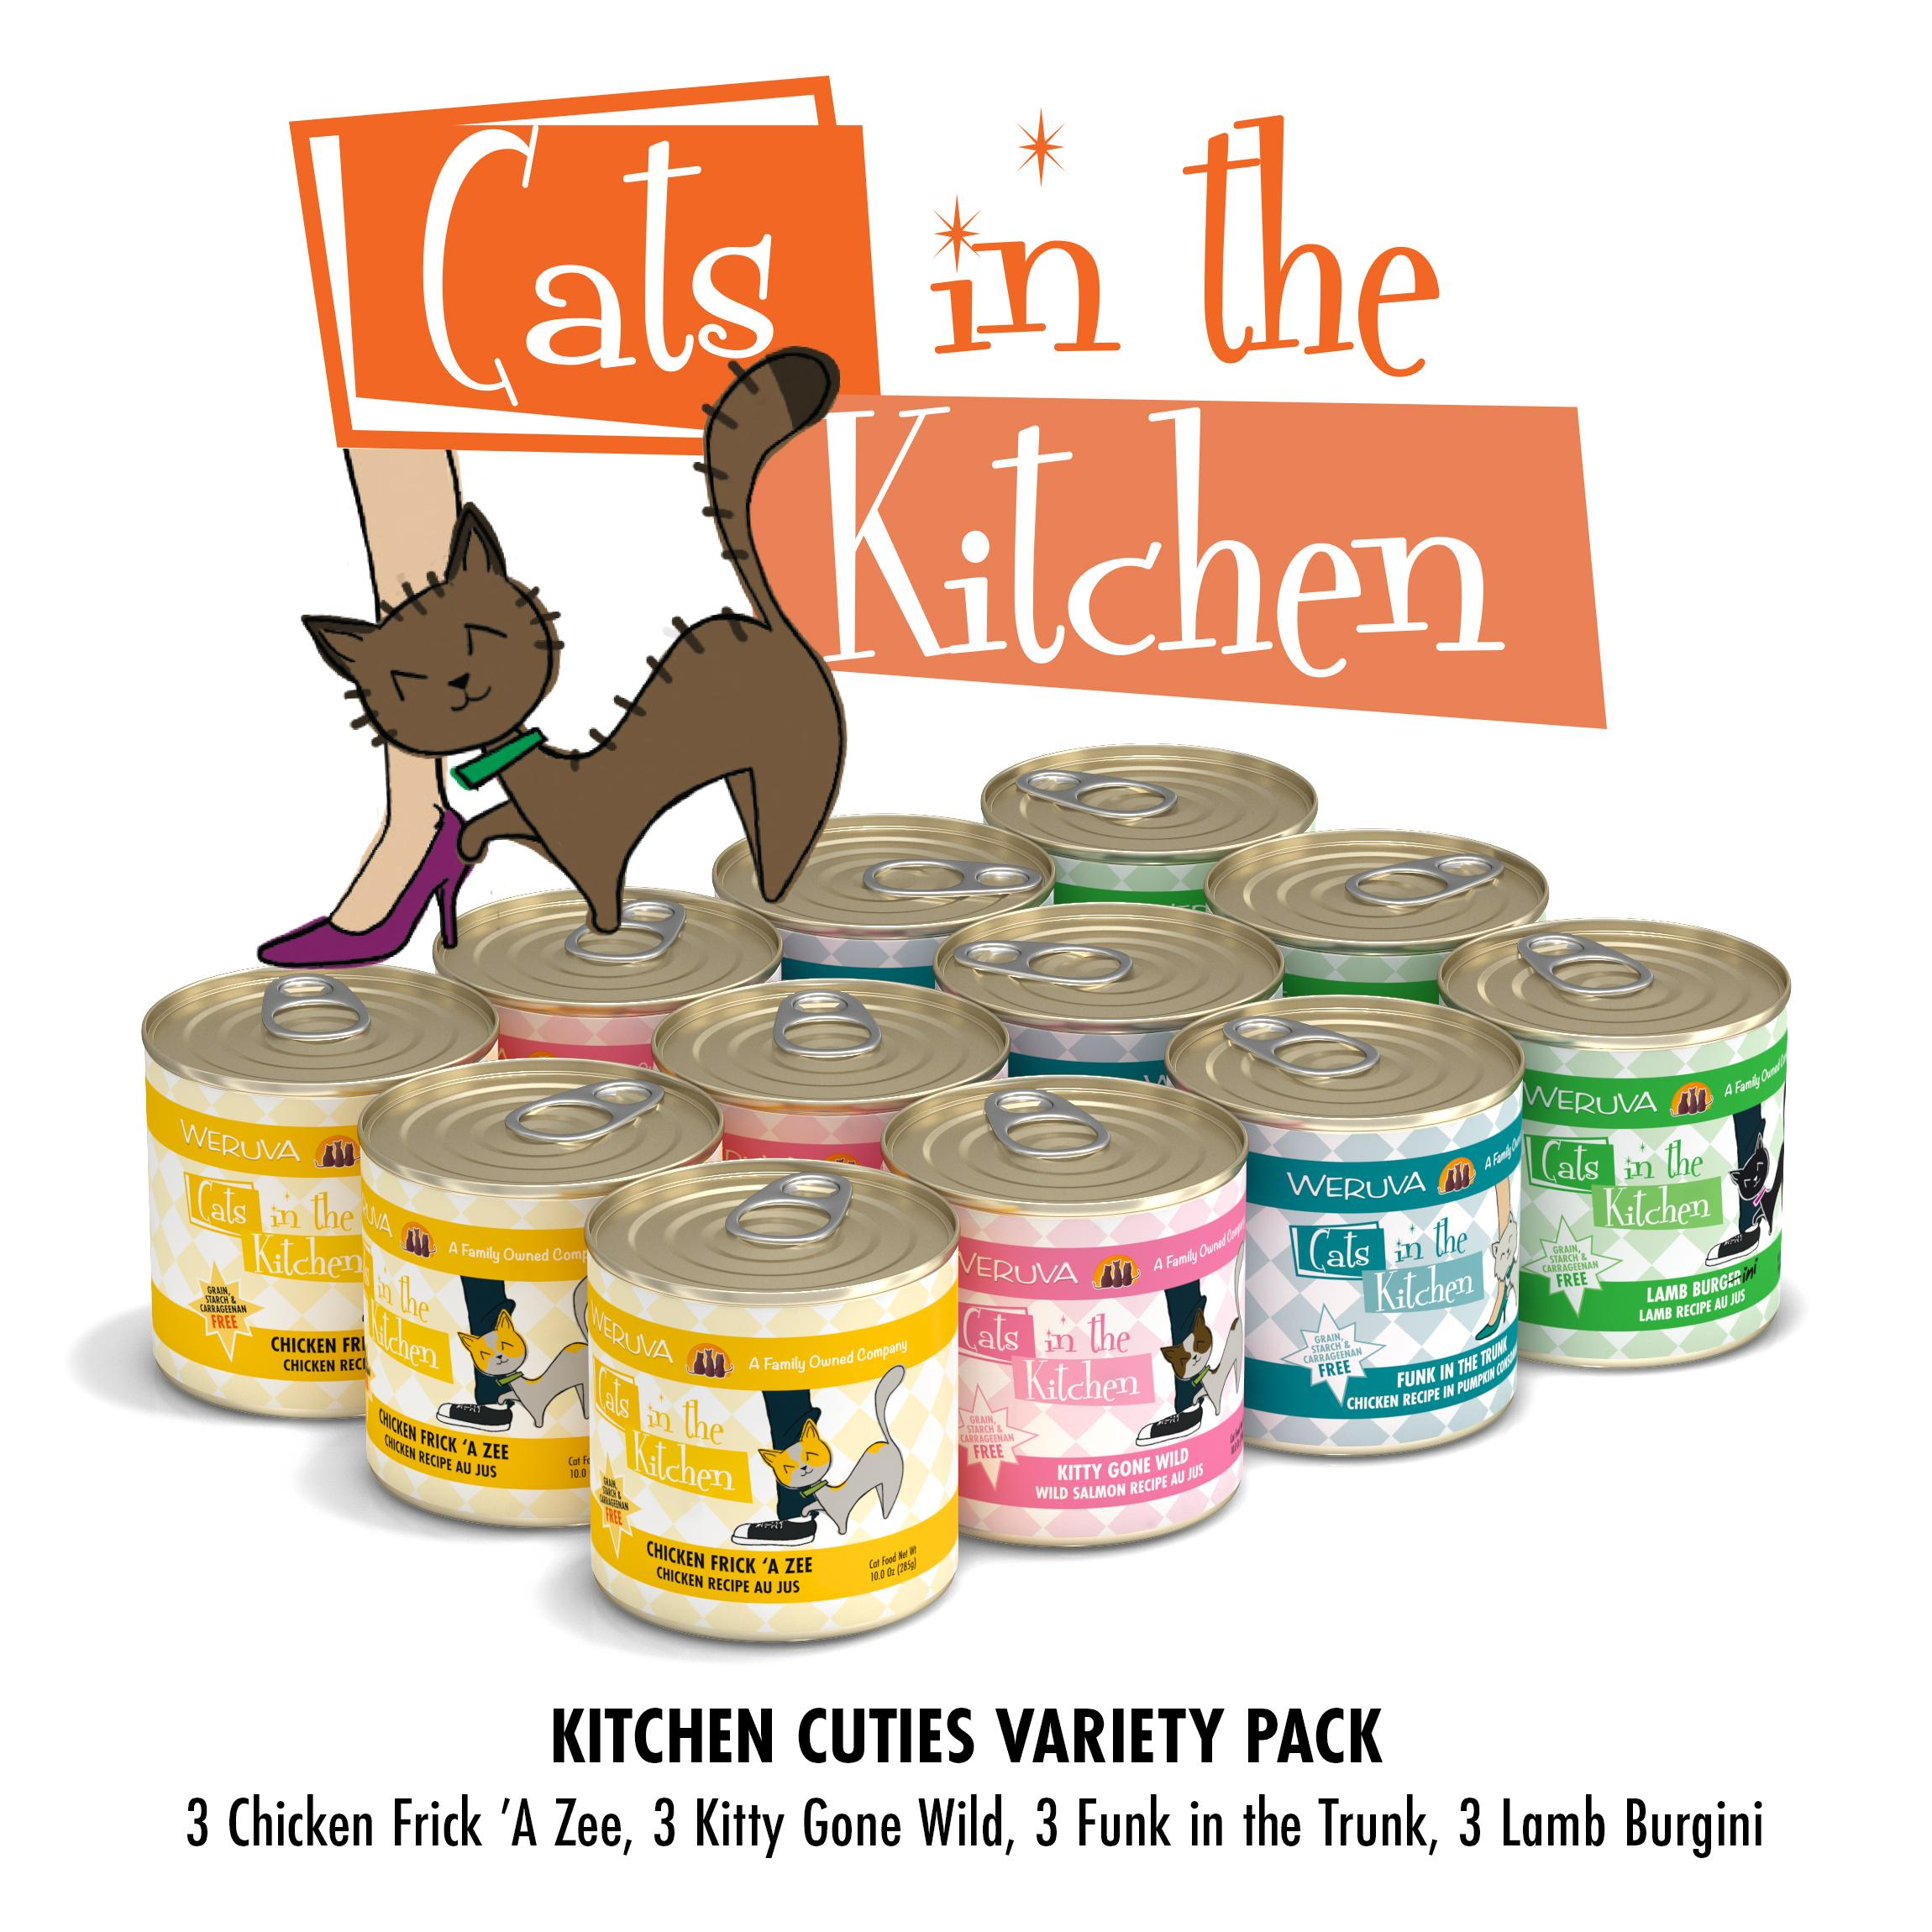 Weruva Cats in the Kitchen Kitchen Cuties Variety Pack Grain-Free Canned Cat Food, 10-oz, case of 12